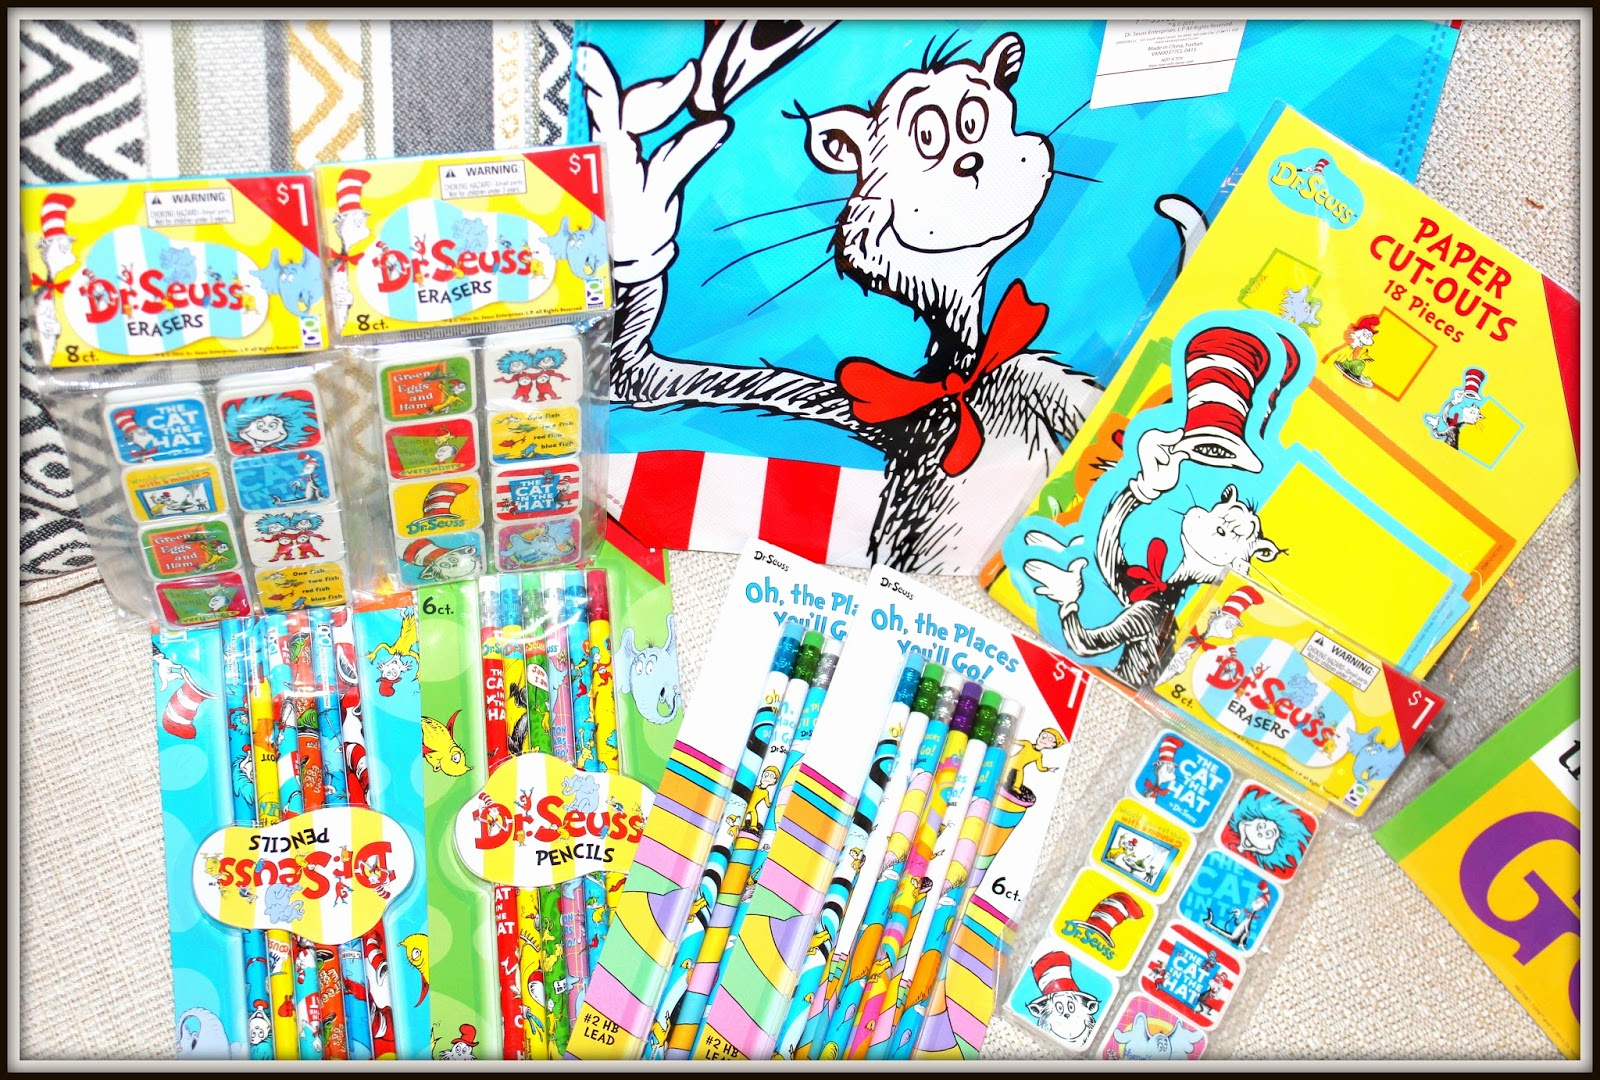 Inspirational Dr Seuss Decorating with Fun Bags Paper Cut Outs and some first day Pencils and Erasers Won ut the kids LOVE em